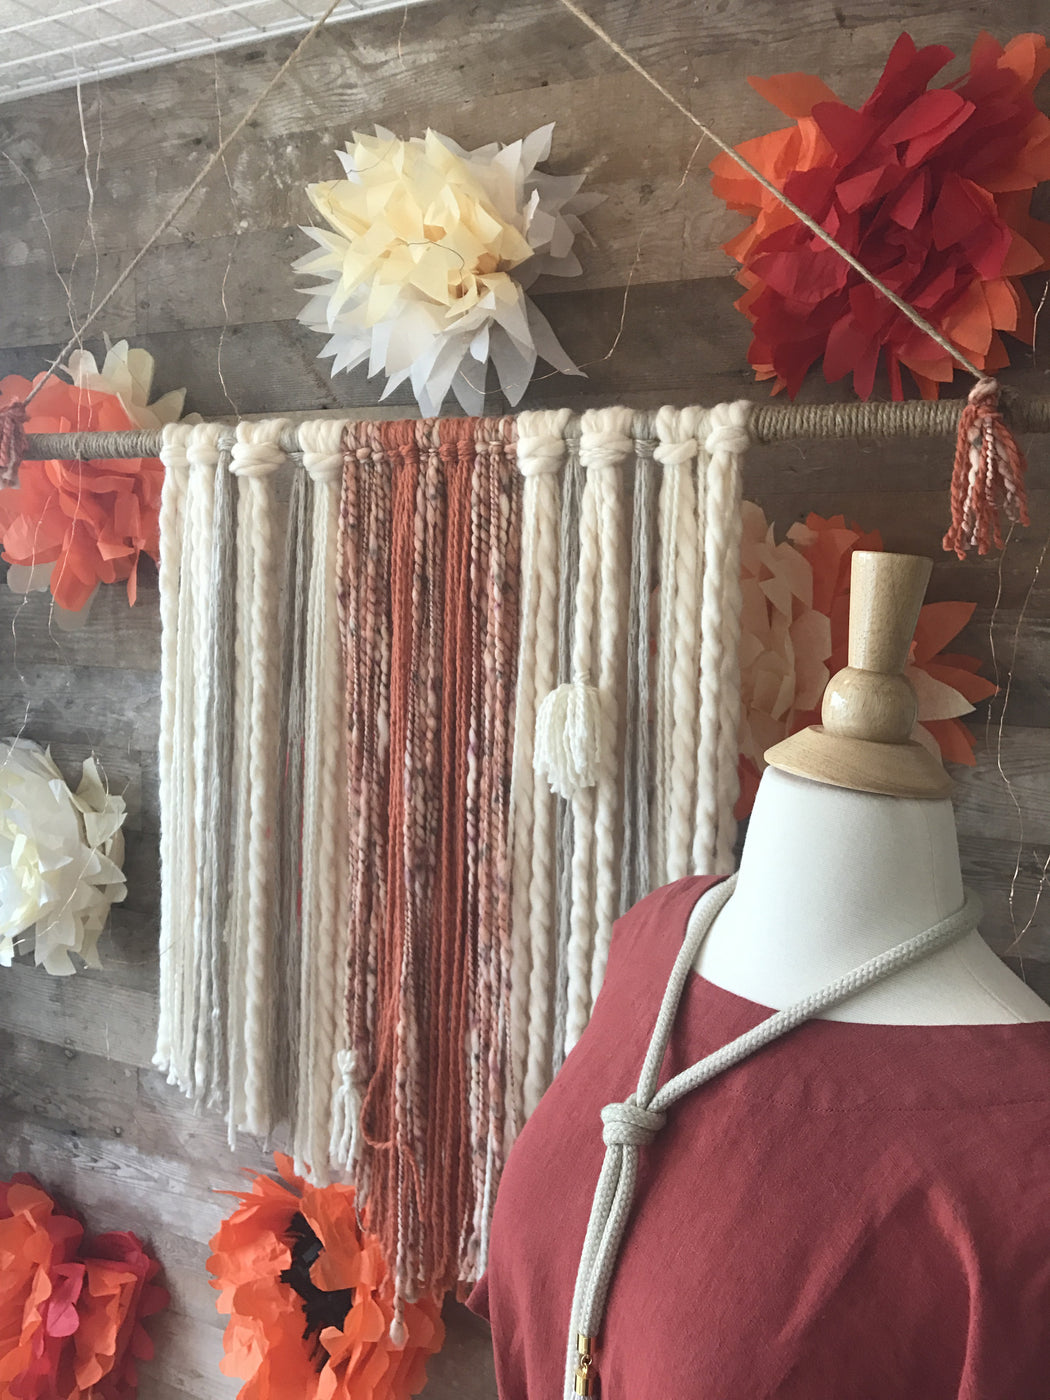 Yarn Tassel Wall Hanging, Gingerly Witty - Gingerly Witty